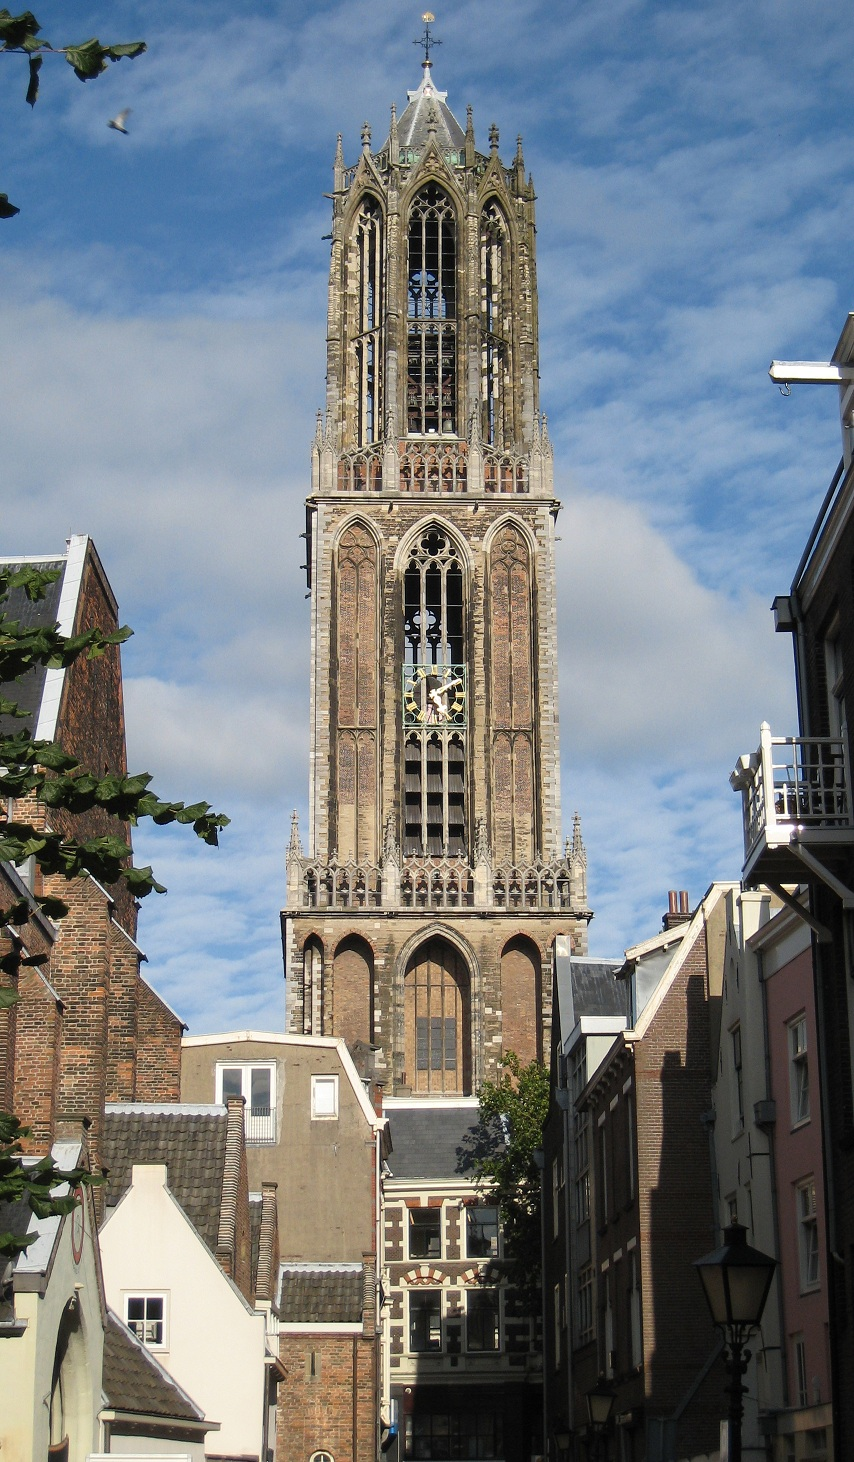 Utrecht cathedral tower (Domtoren), a main sight of the city and landmark of Utrecht